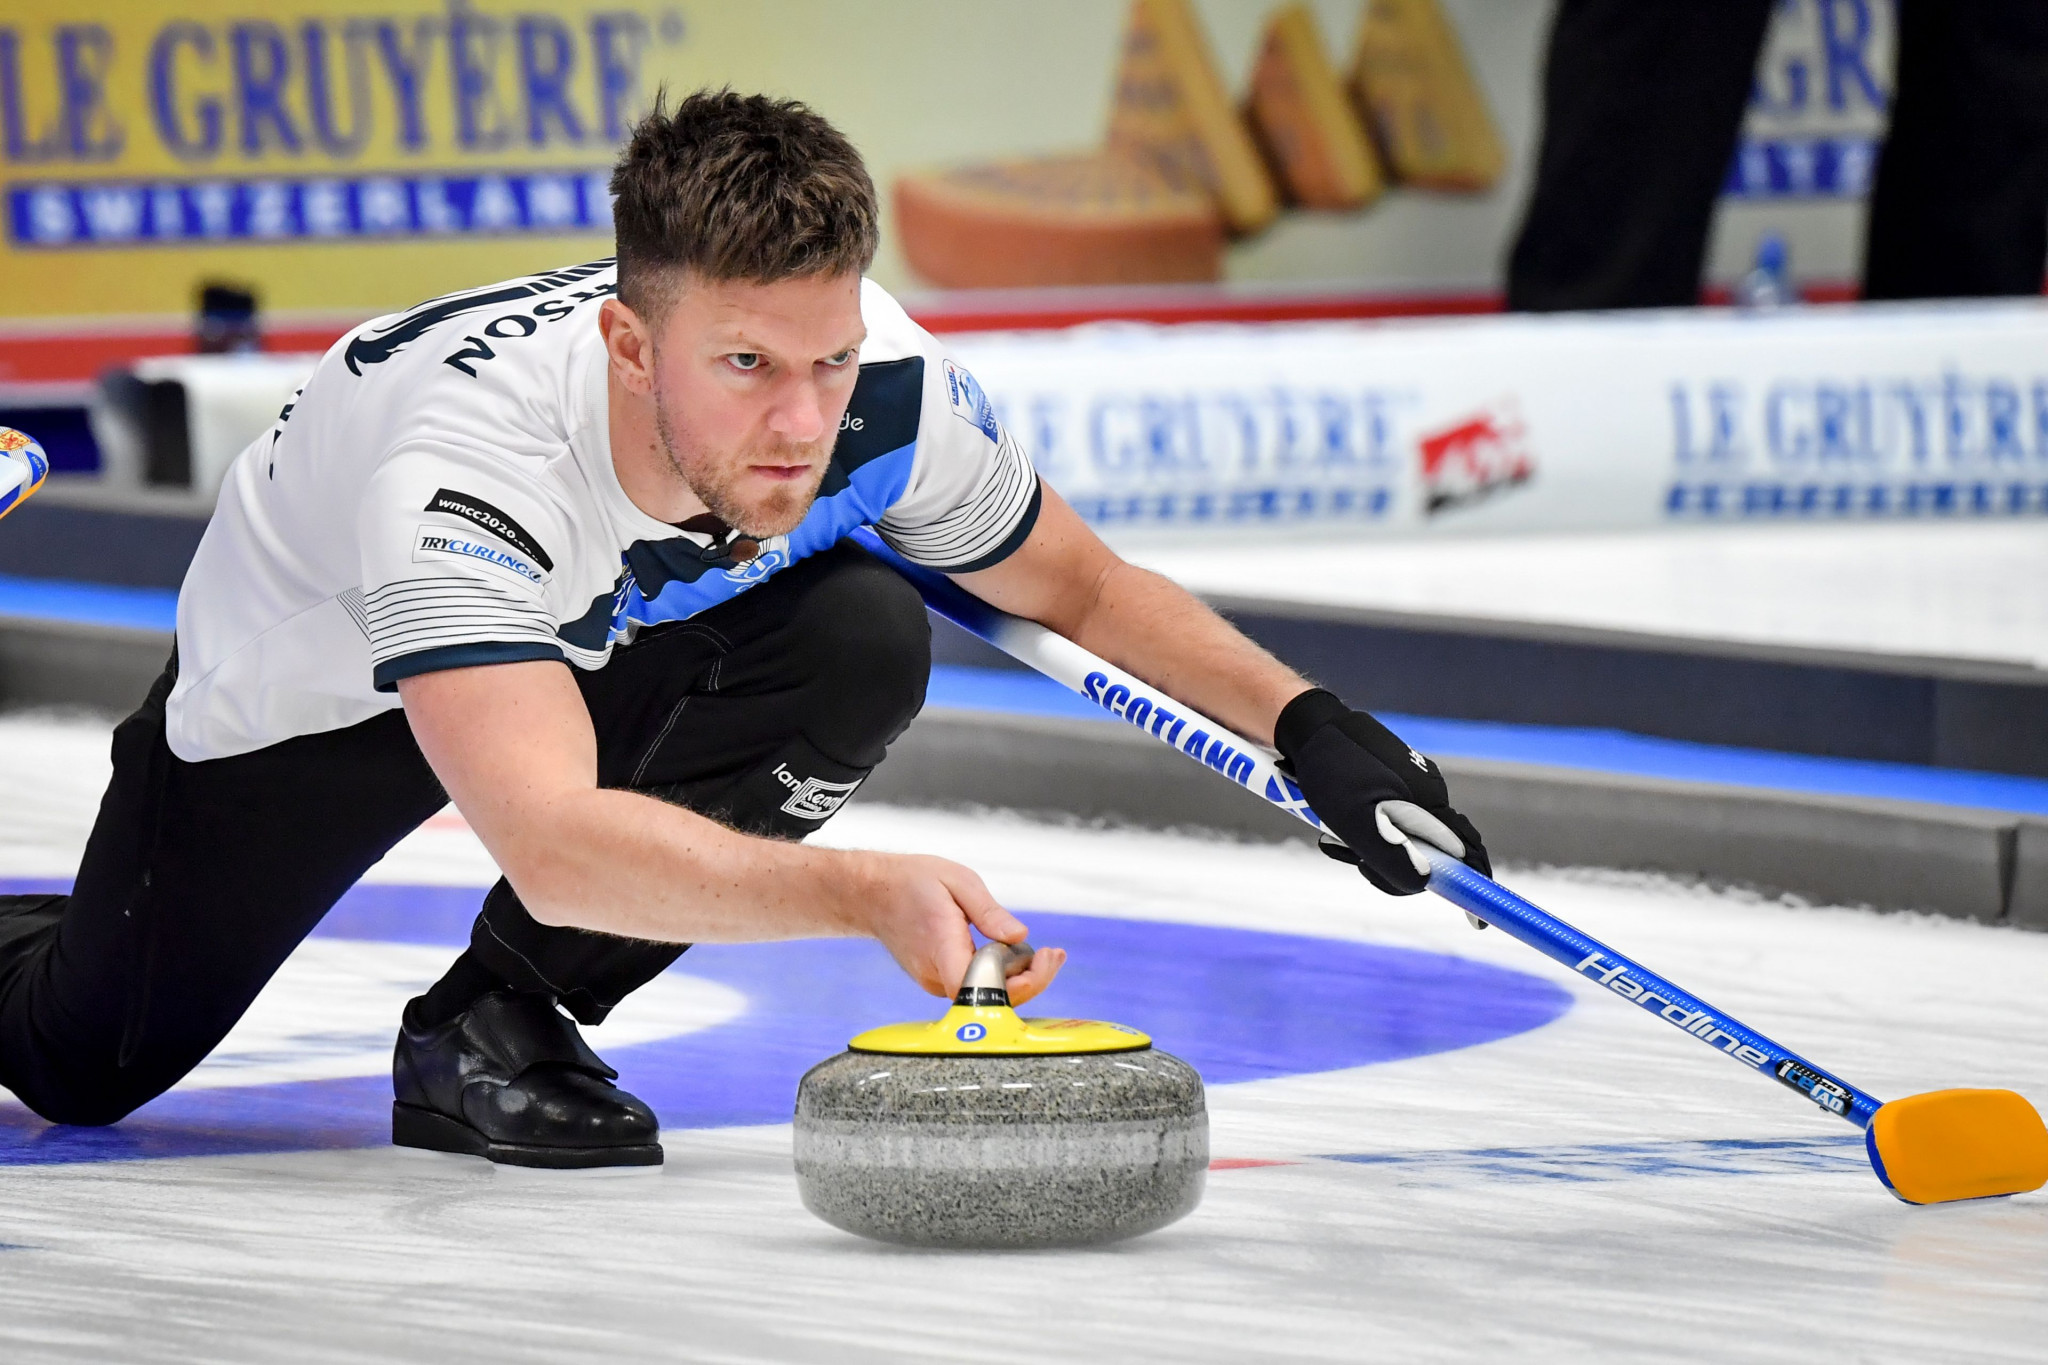 Defending men's champion loses first match at curling's Canadian Open